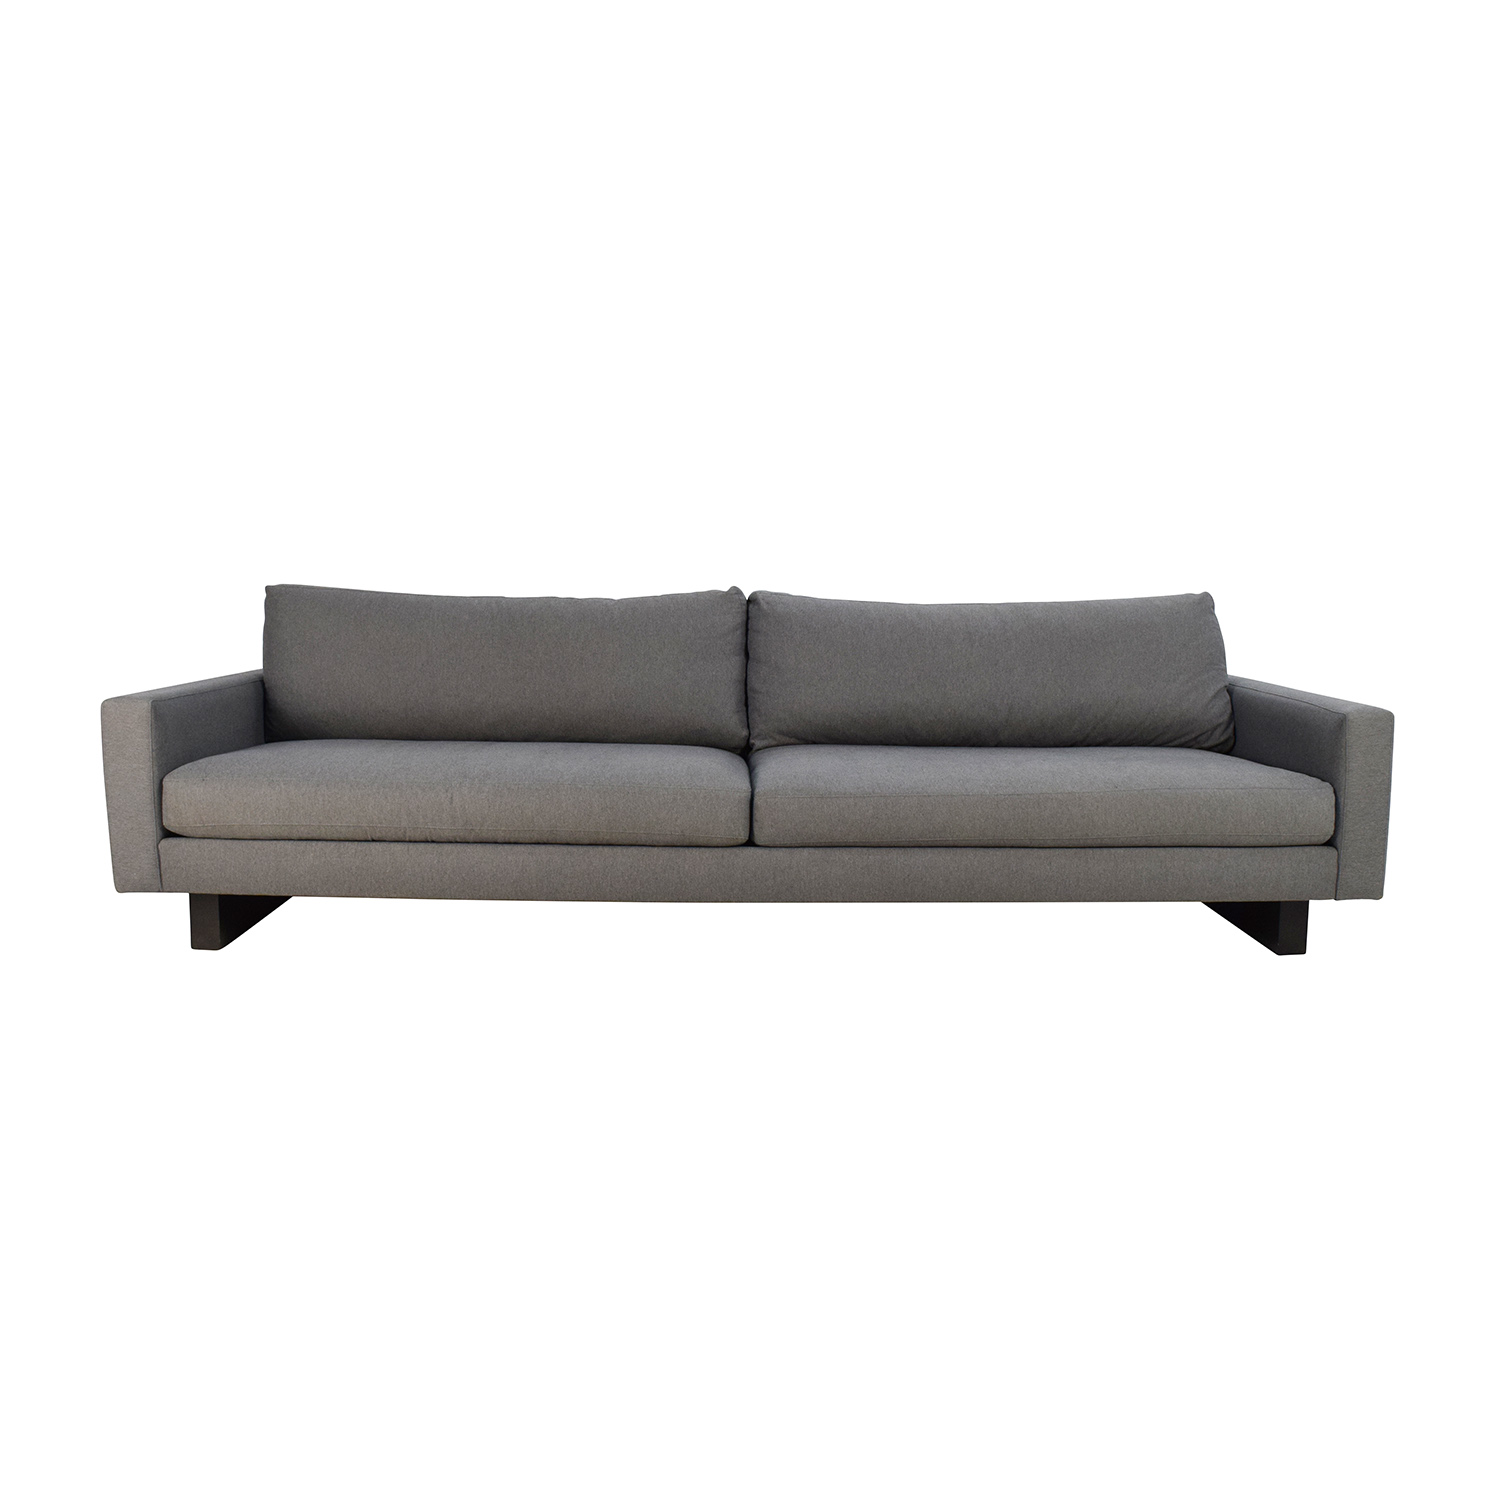 buy Room & Board Hess 102 Sofa in Petra Charcoal Room and Board Classic Sofas